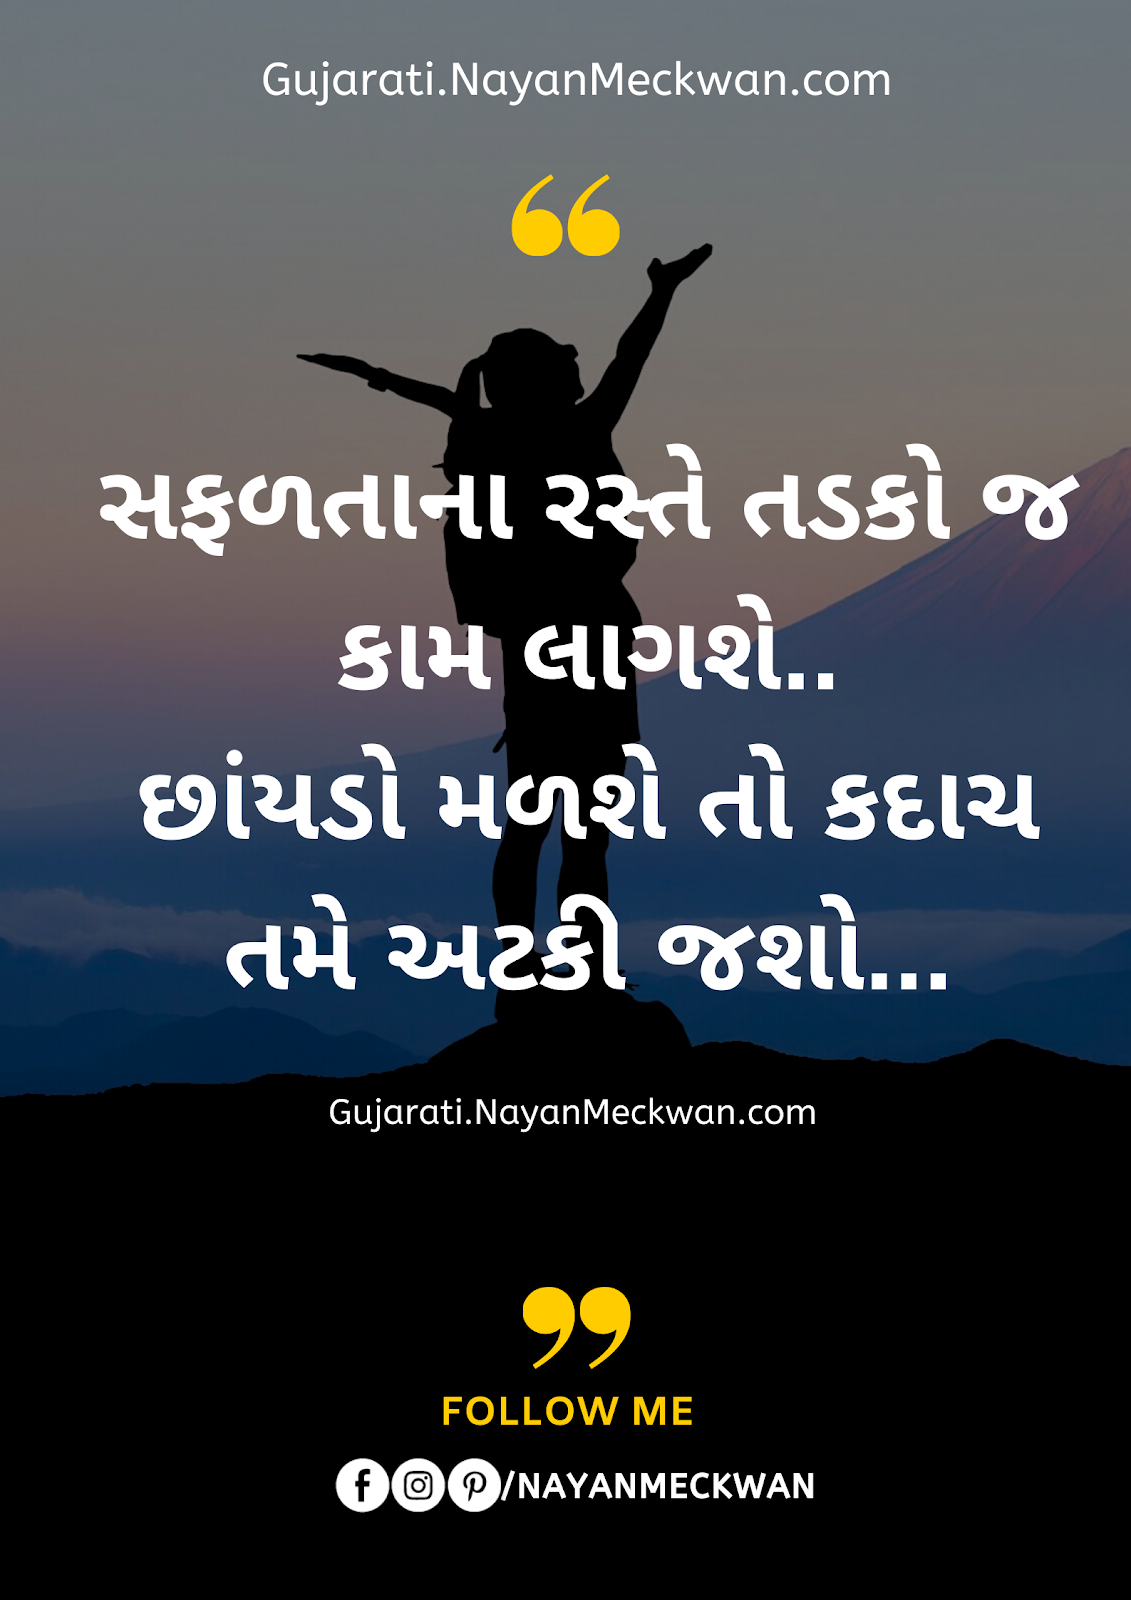 Saras success Good Morning Gujarati Suvichar ગુજરાતી સુવિચાર images 2019 2020